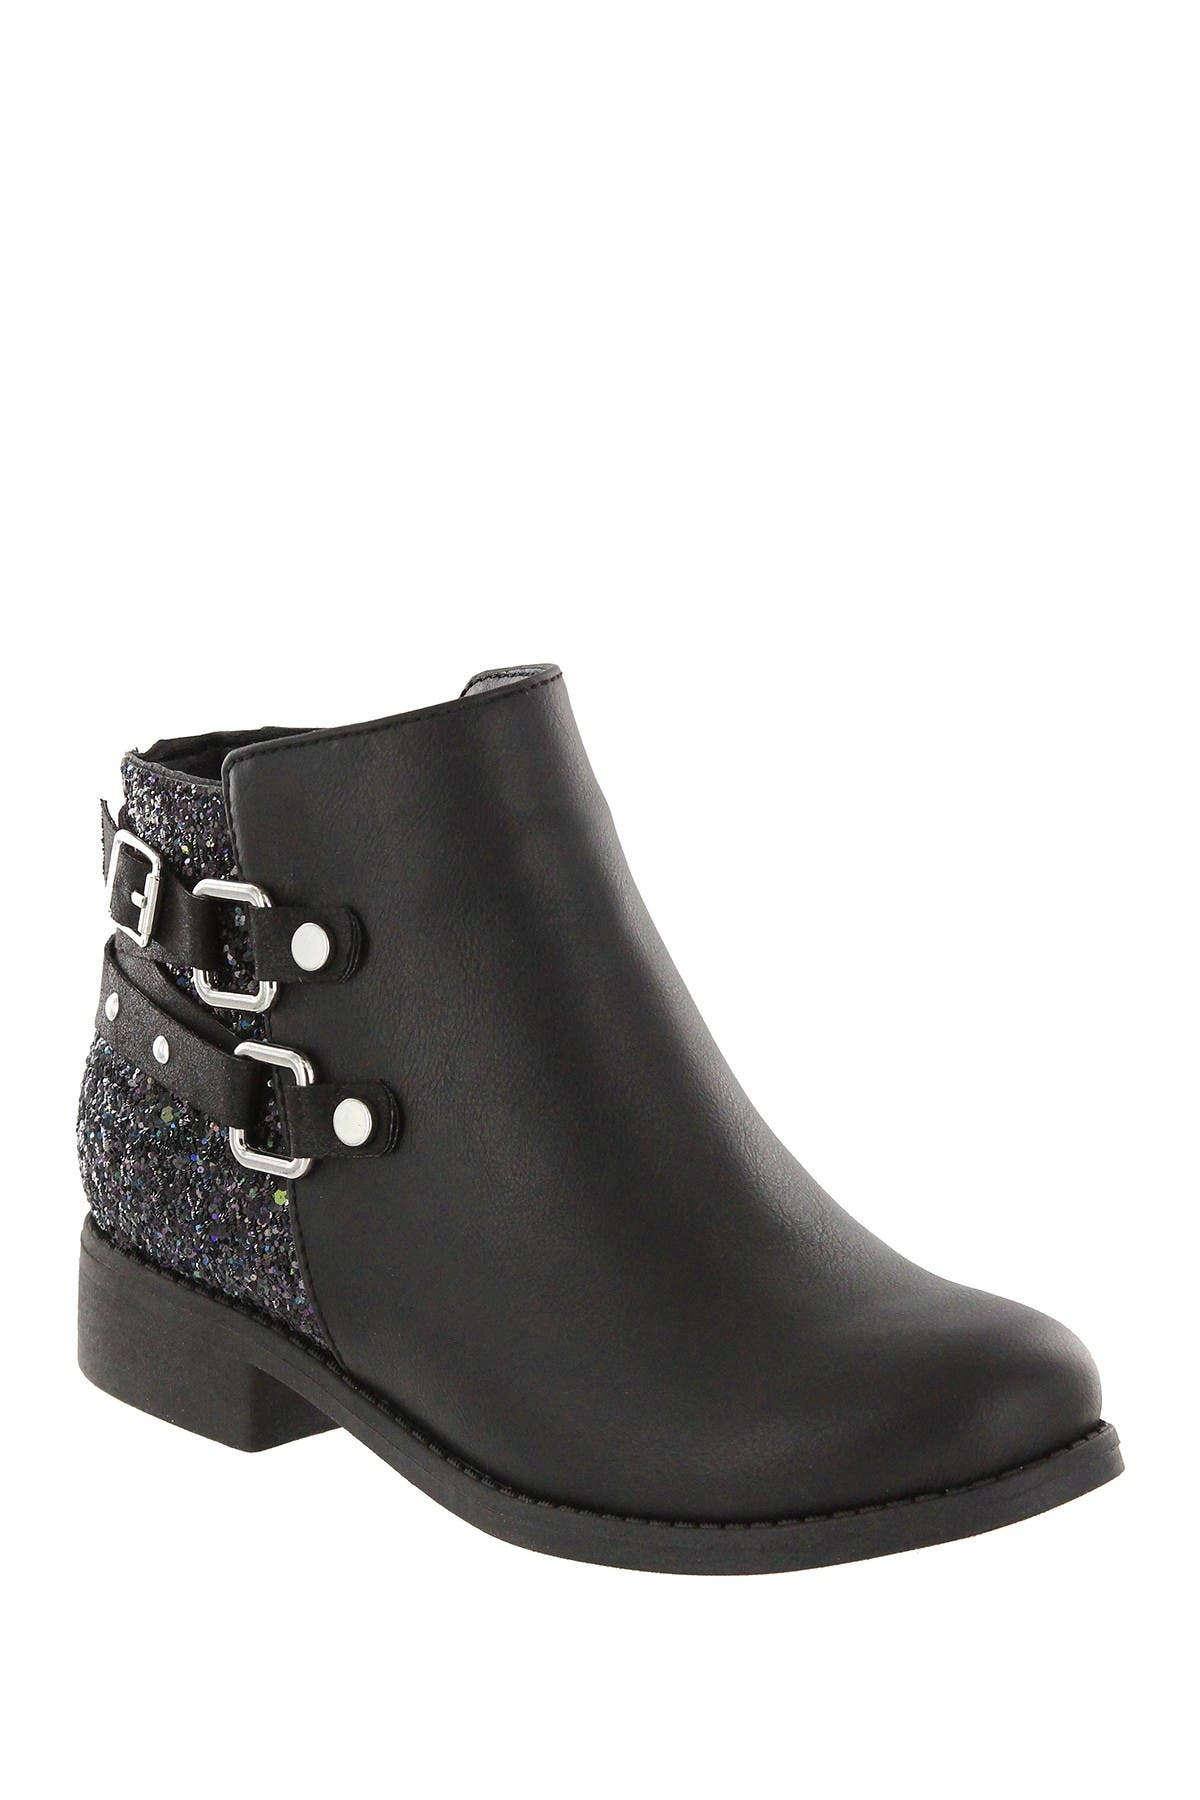 Image of MIA Stormi Ankle Boot